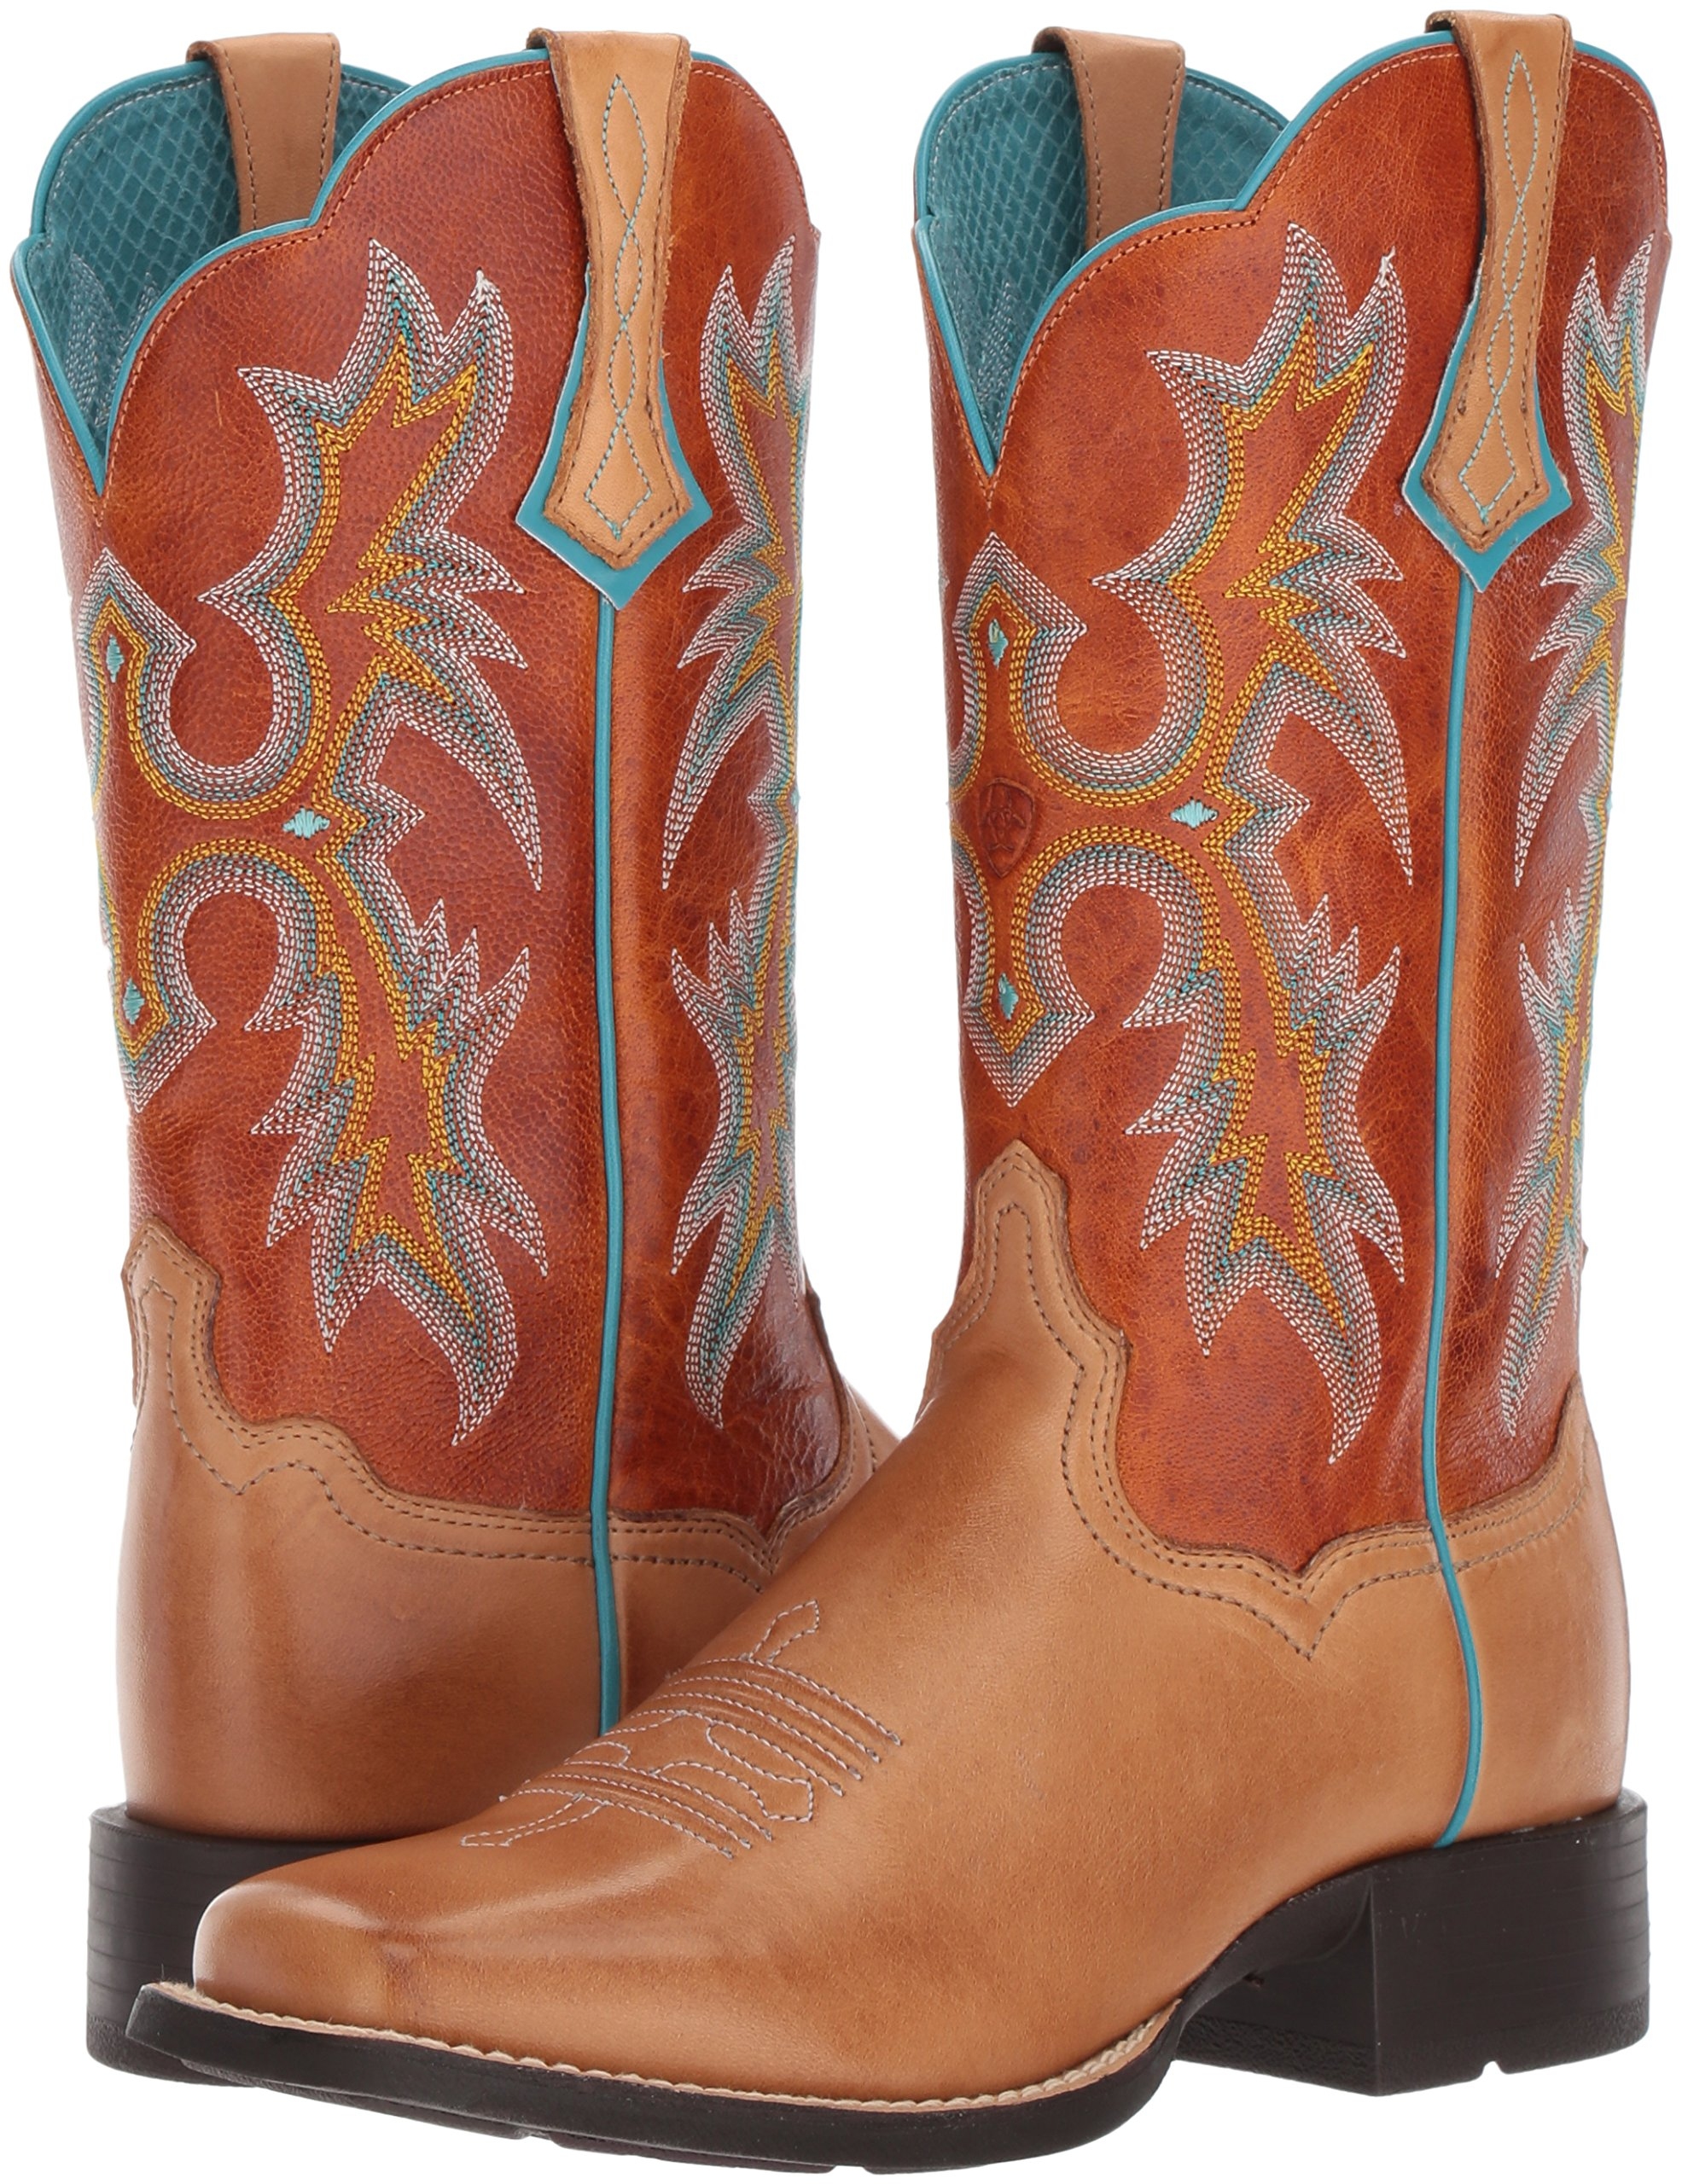 Ariat Women's Tombstone Work Boot, Tack Room Honey, 8.5 B US by Ariat (Image #6)